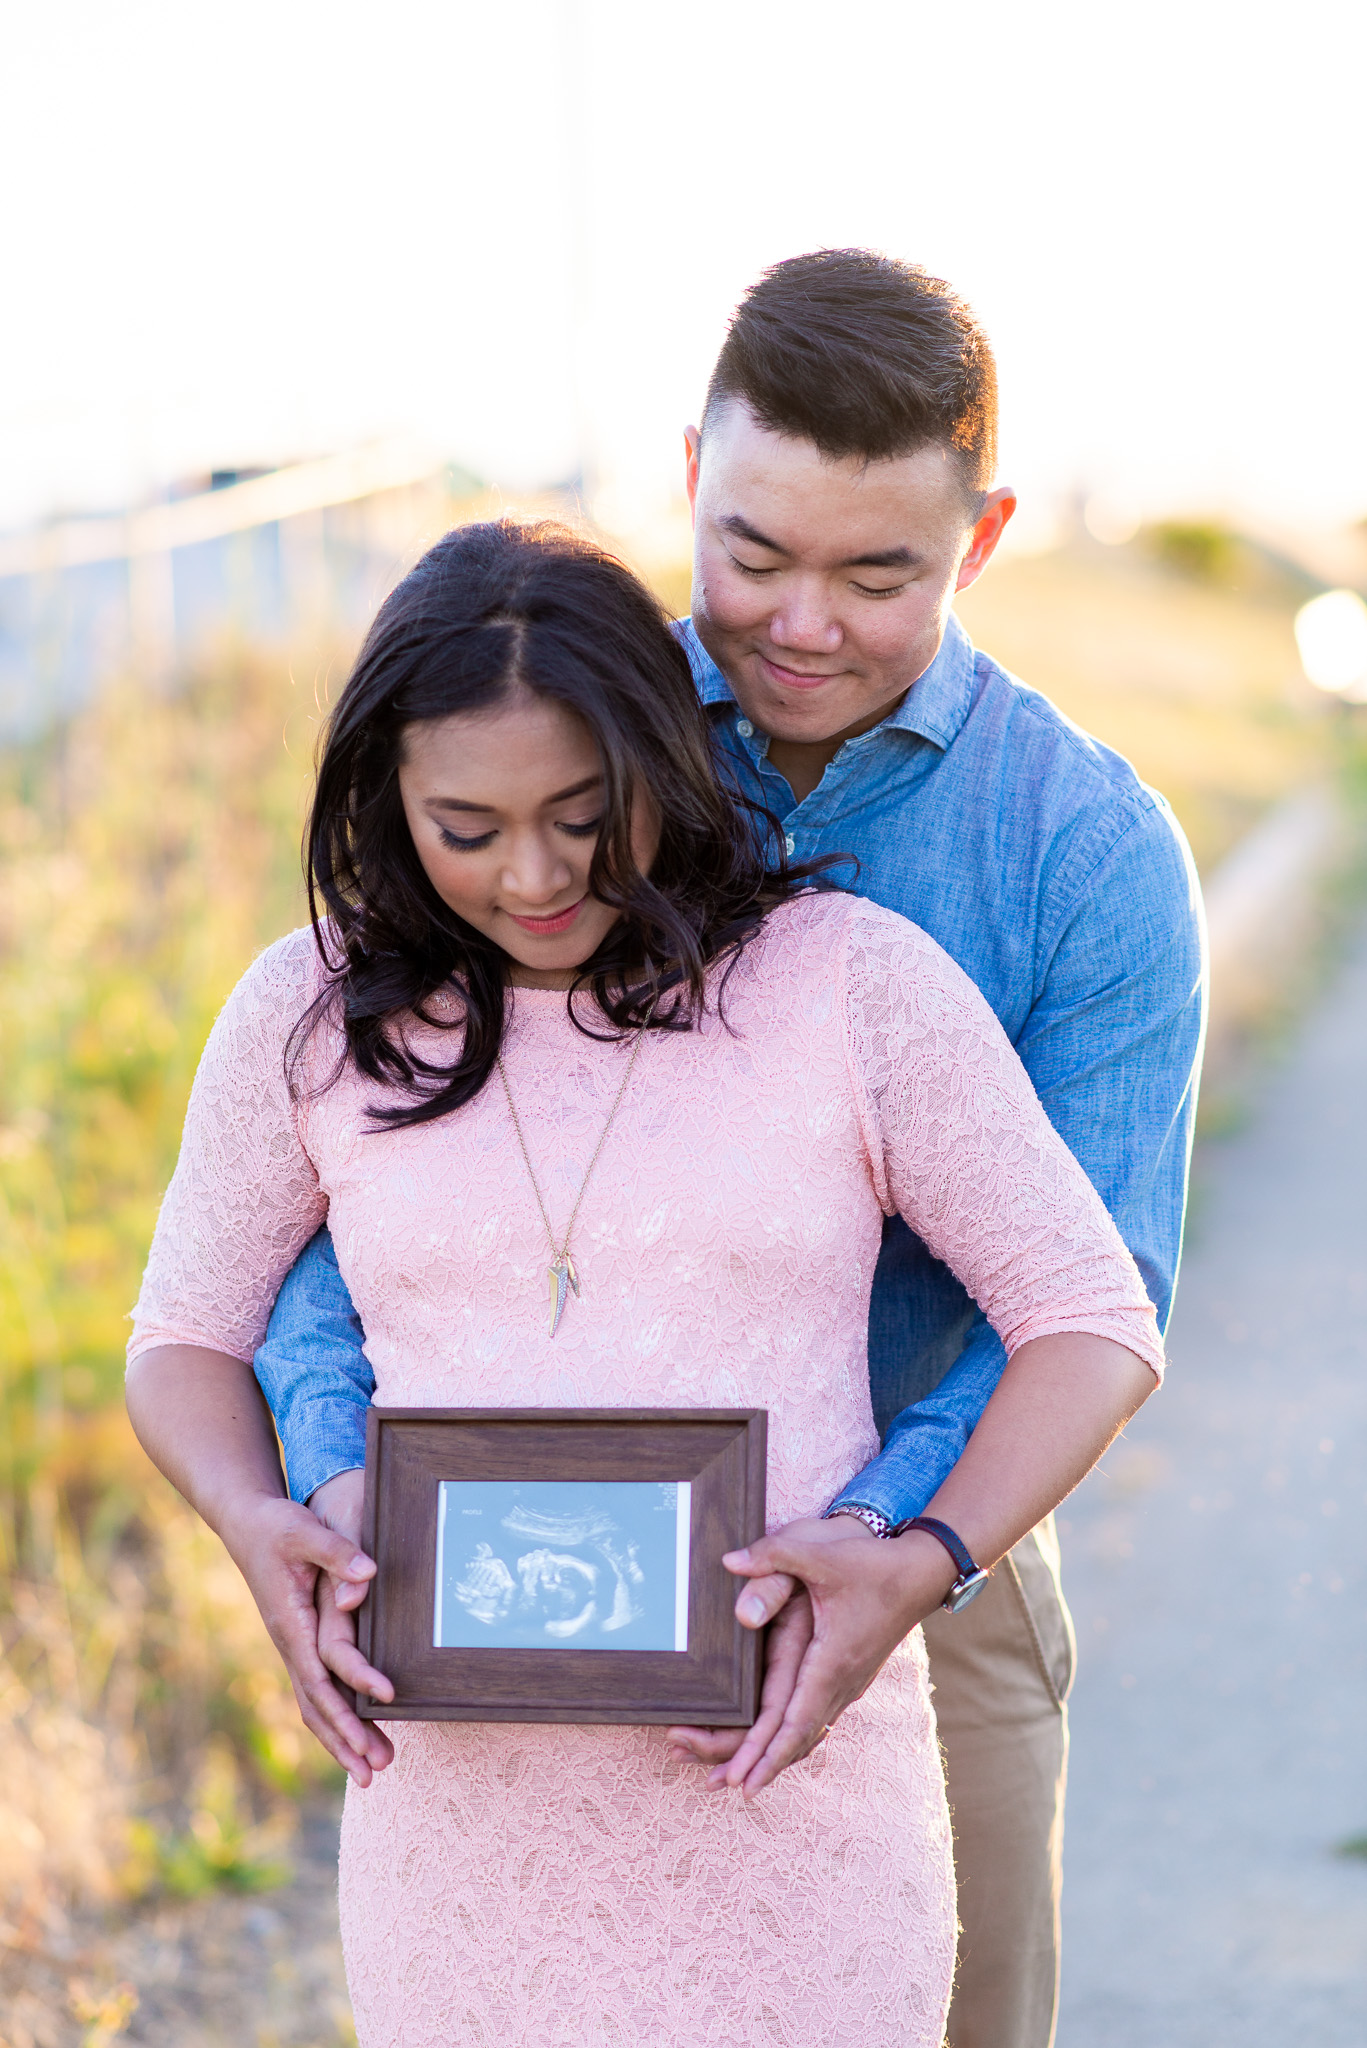 Evening Sunset Maternity Photo Shoot-12.jpg